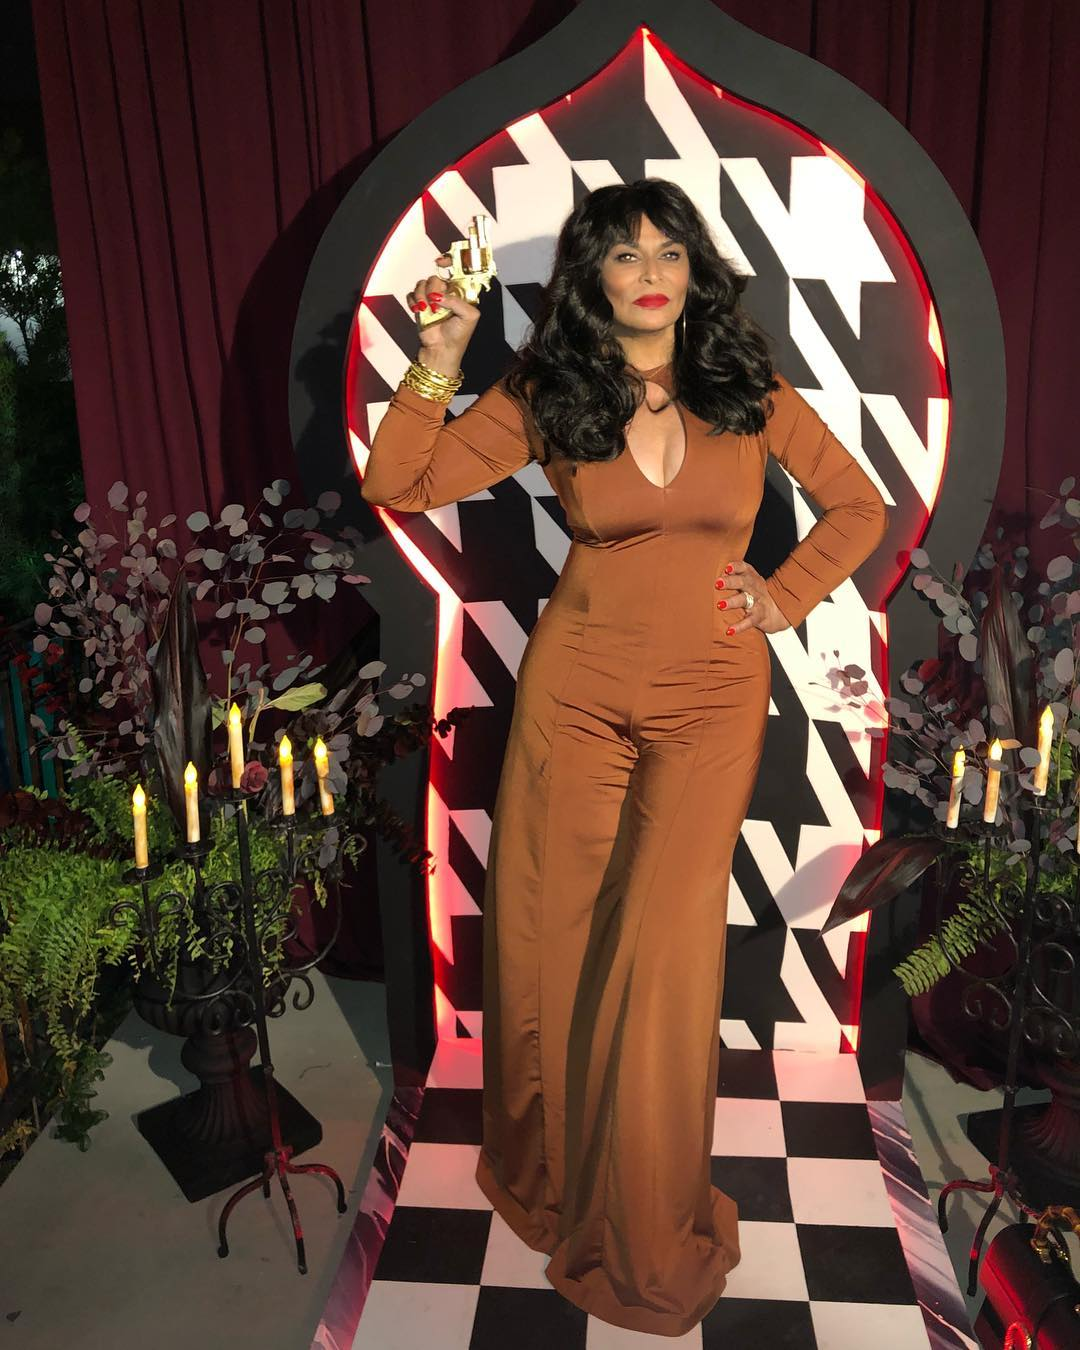 tina-lawson-dressed-as-foxy-brown-for-halloween-2019